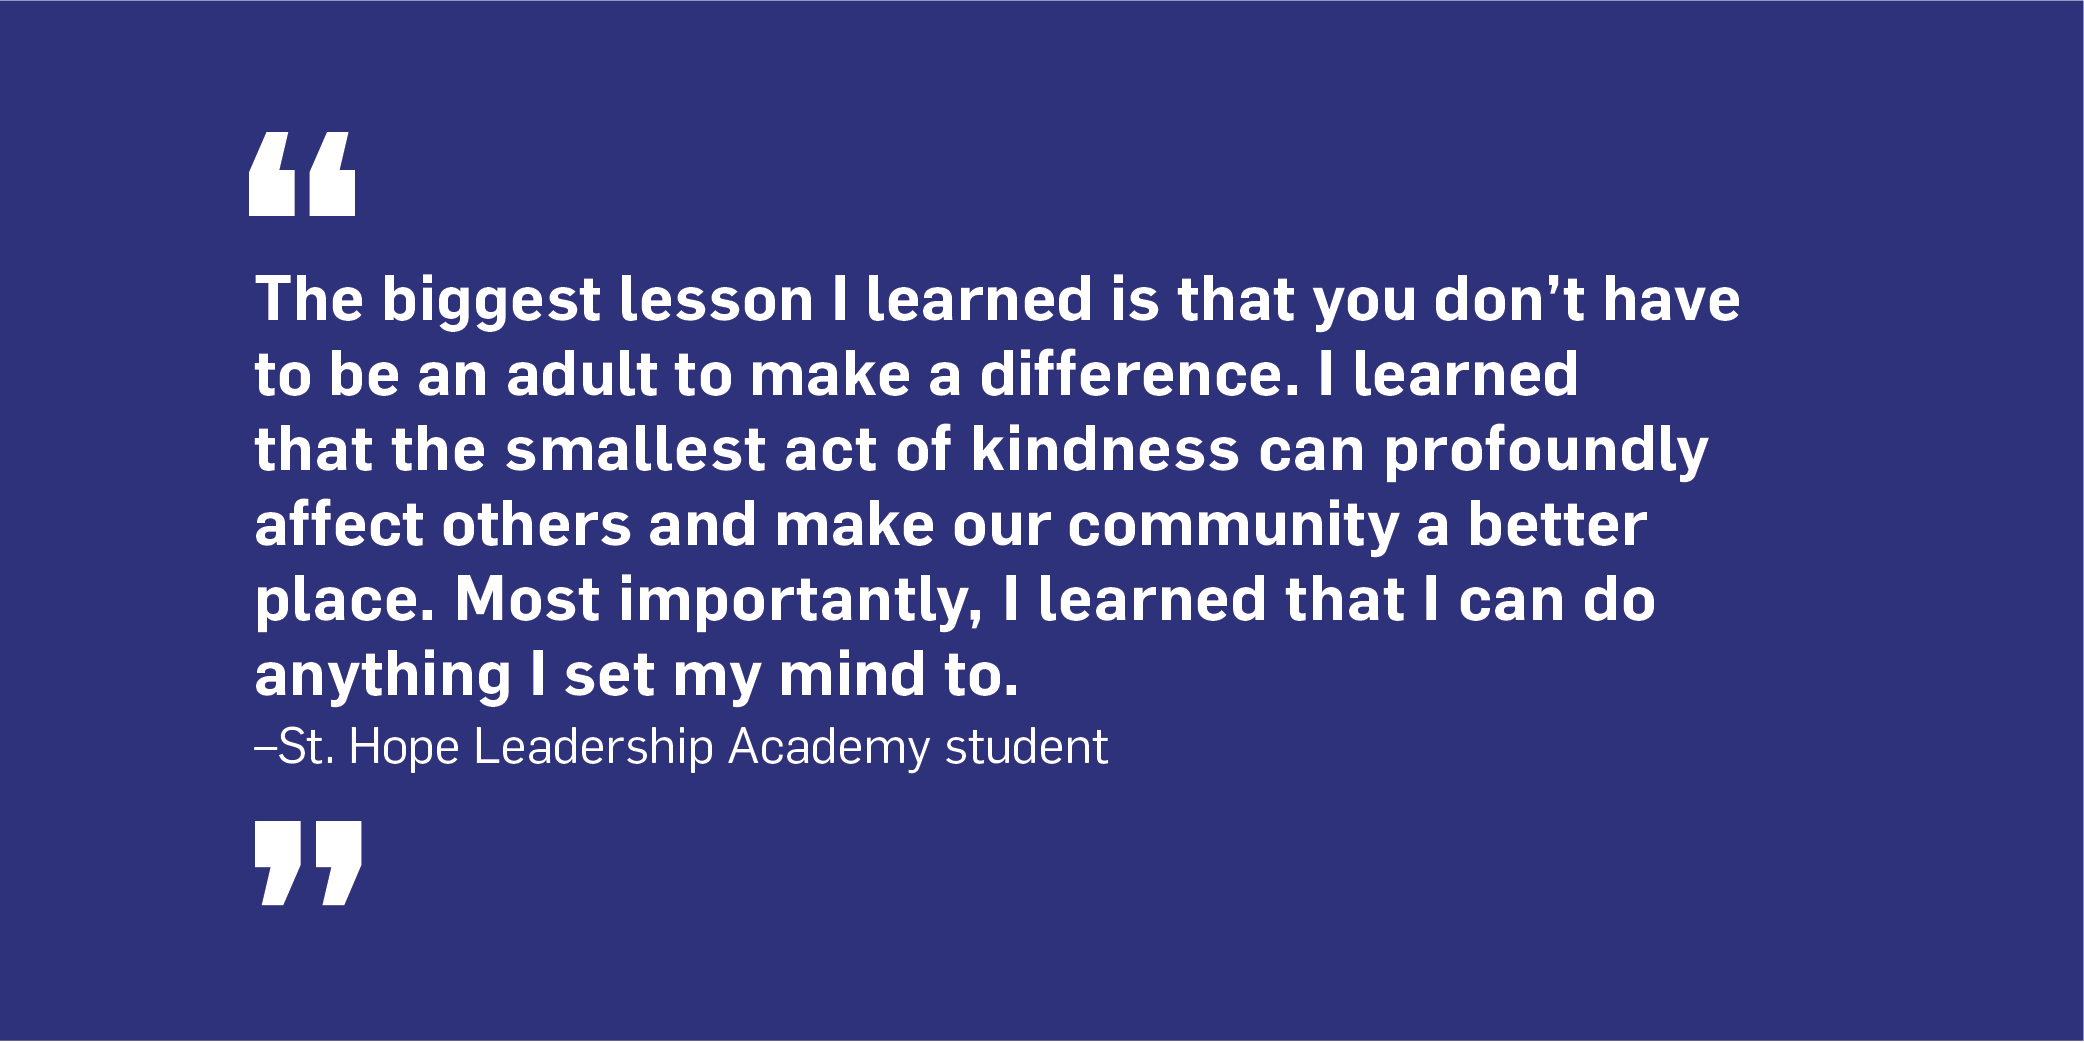 Quote. The biggest lesson I learned is that you don't have to be an adult to make a difference. I learned that the smallest act of kindness can profoundly affect others and make our community a better place. Most importantly, I learned that I can do anything I set my mind to. Unquote. St. Hope Leadership Academy student.